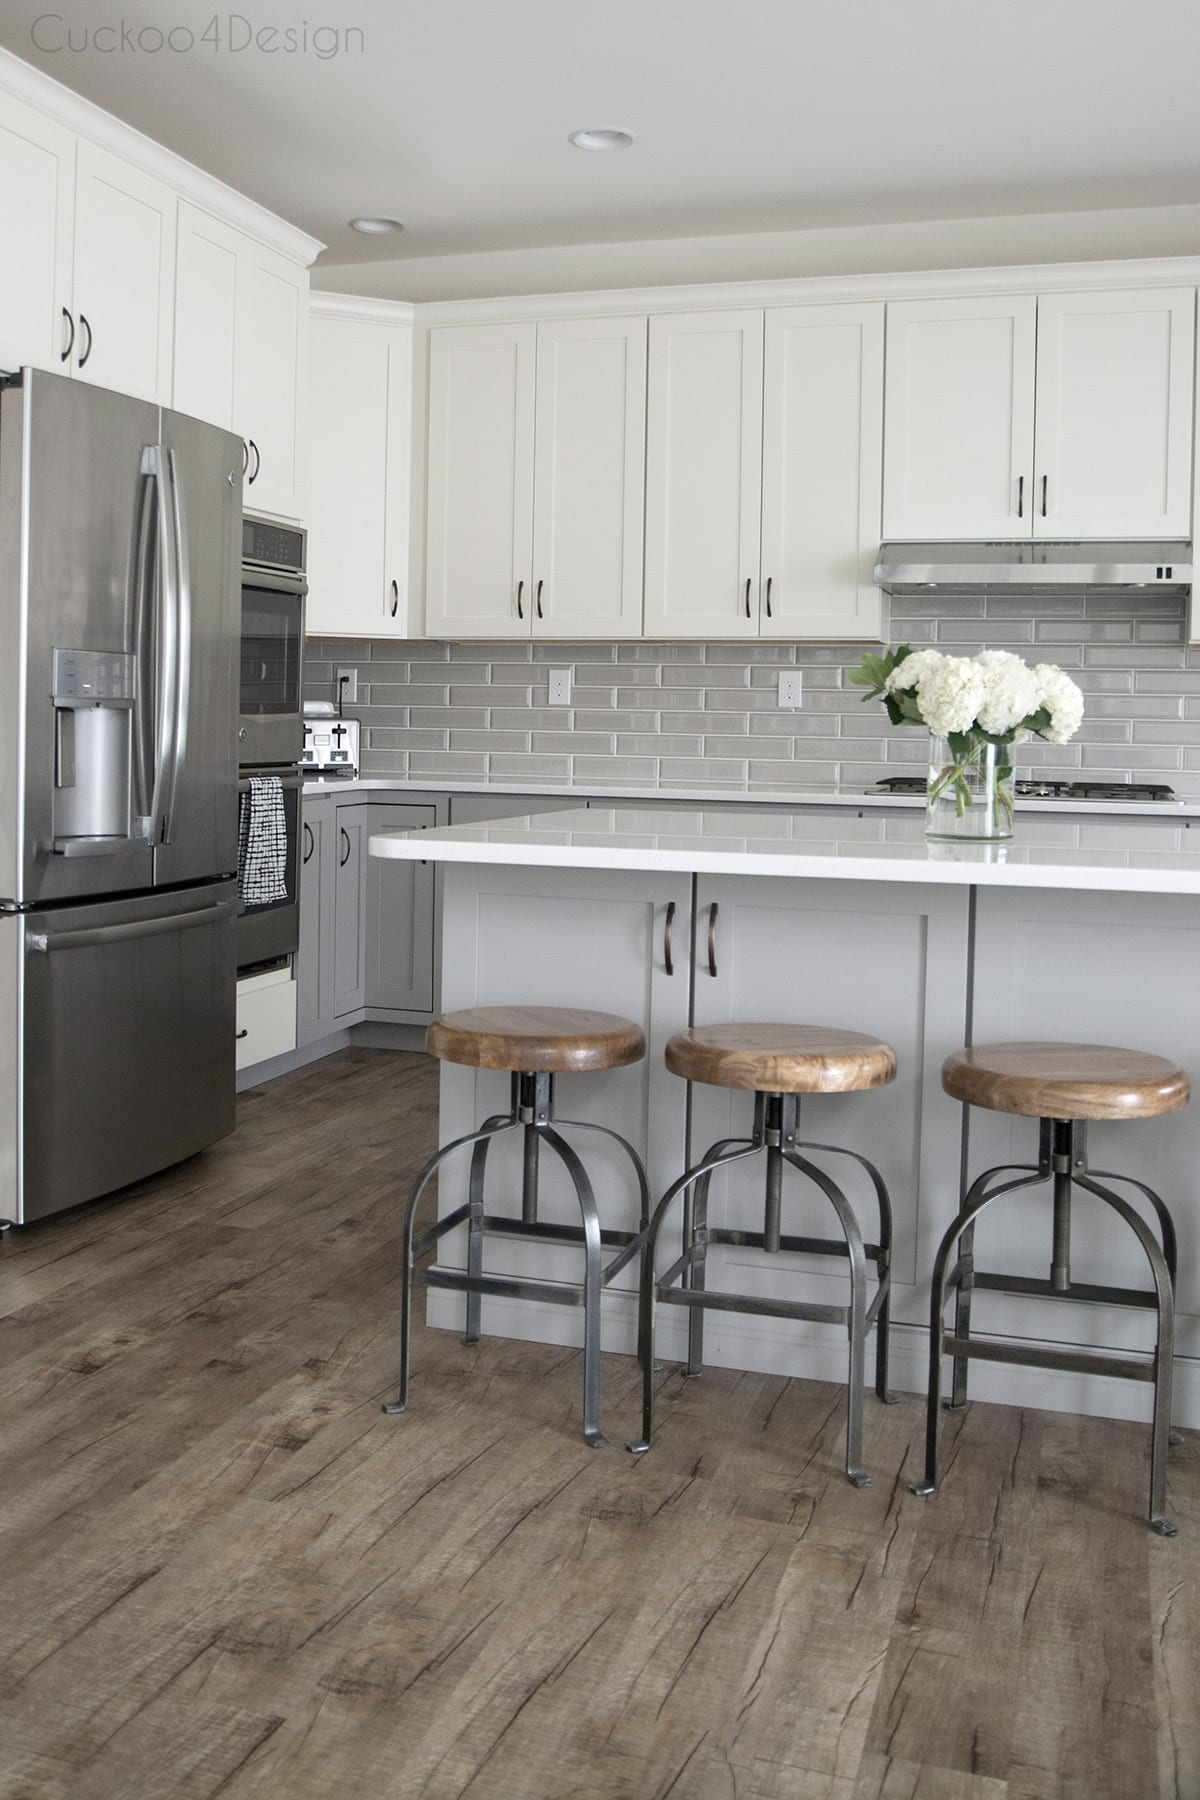 vinyl plank flooring and wood and metal counter stools in grey and white kitchen